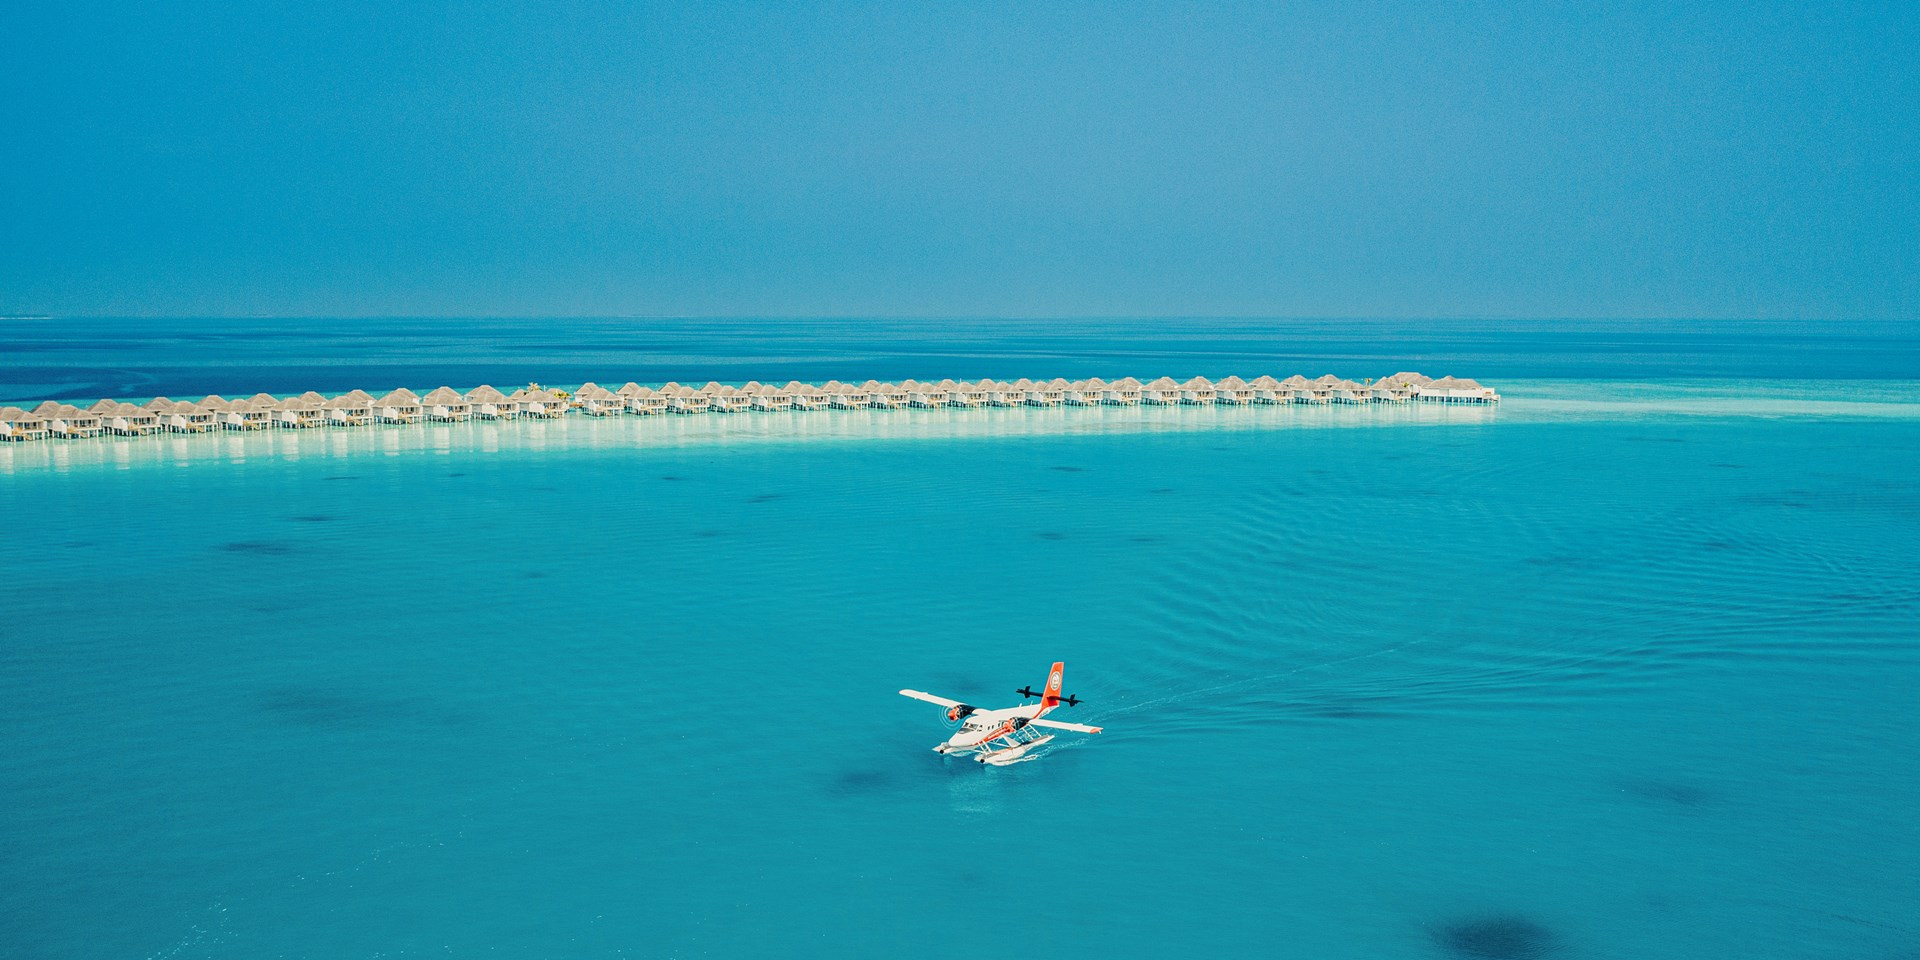 A seaplane coming to land on incredibly clear blue water